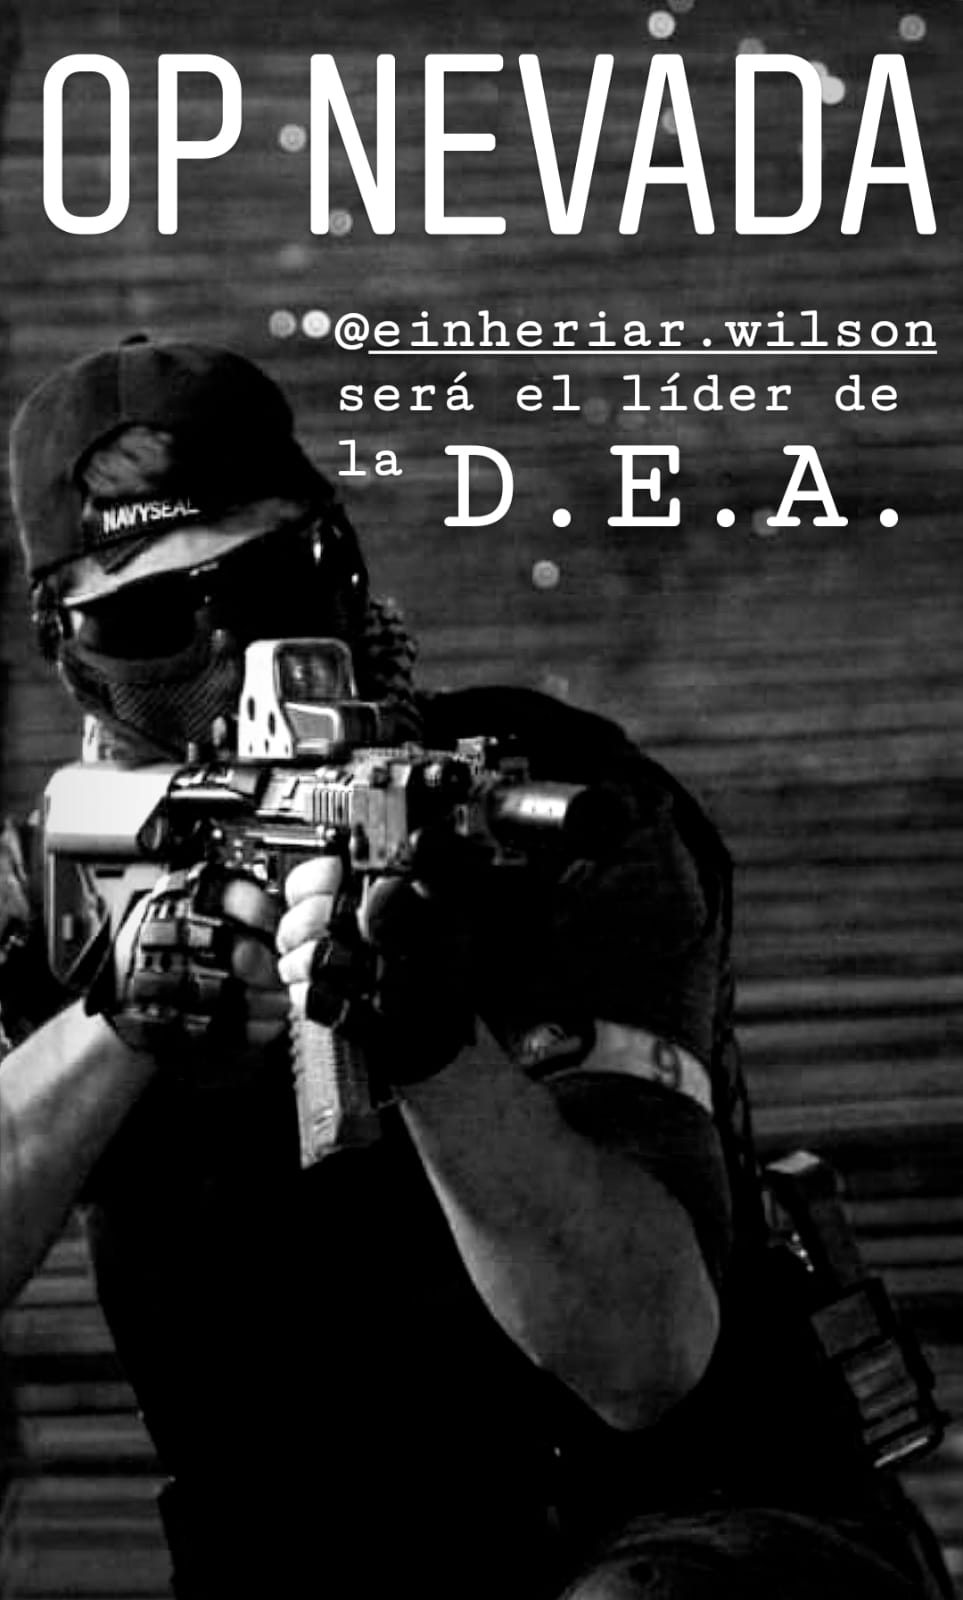 Narcos Domingo 12 Mayo 2019 By Nukemairsoft & eriheriar.airsoft Wilson11